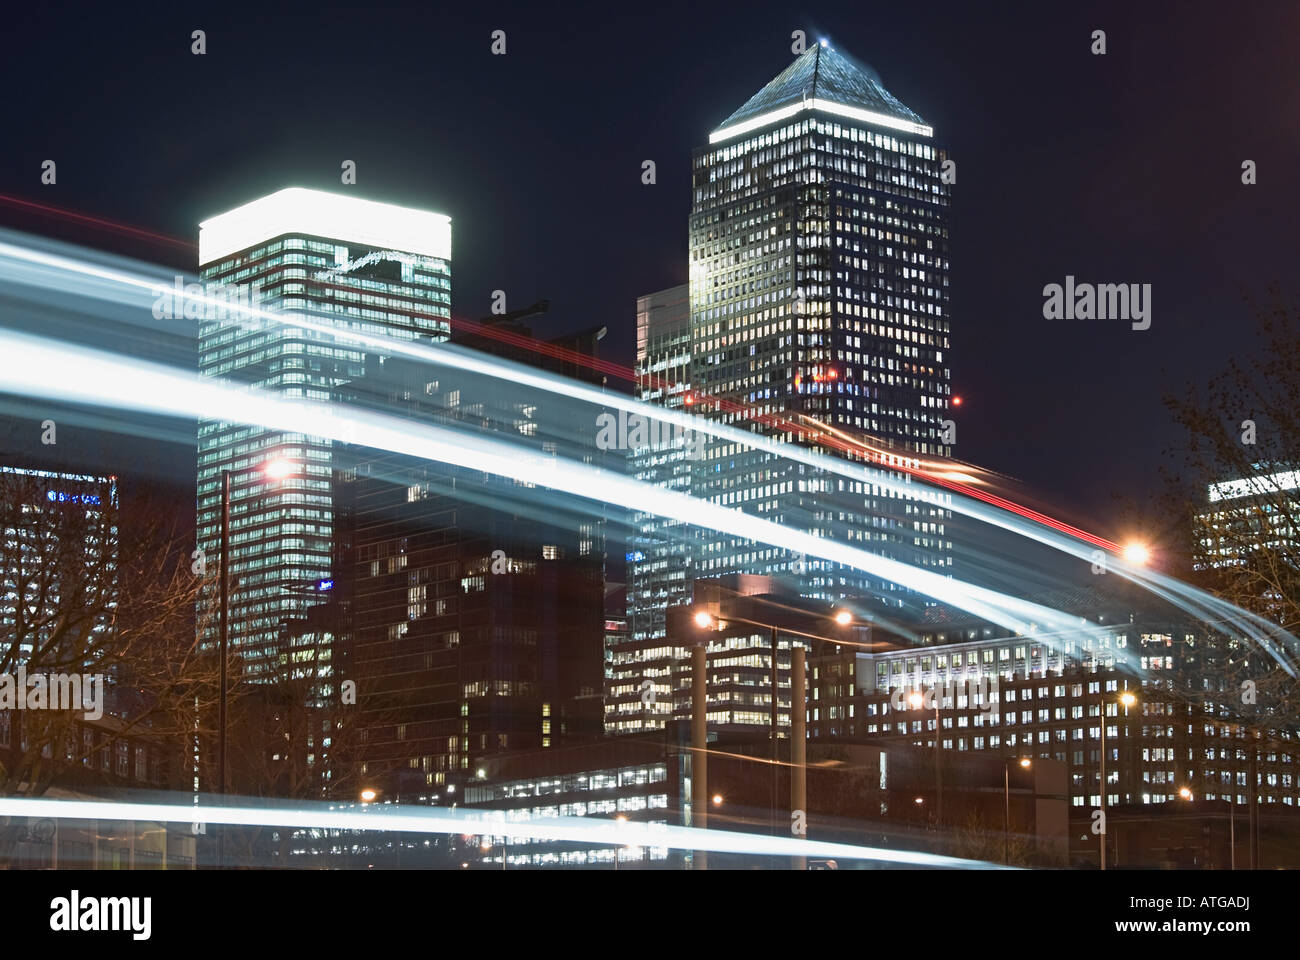 Lights and canary wharf - Stock Image